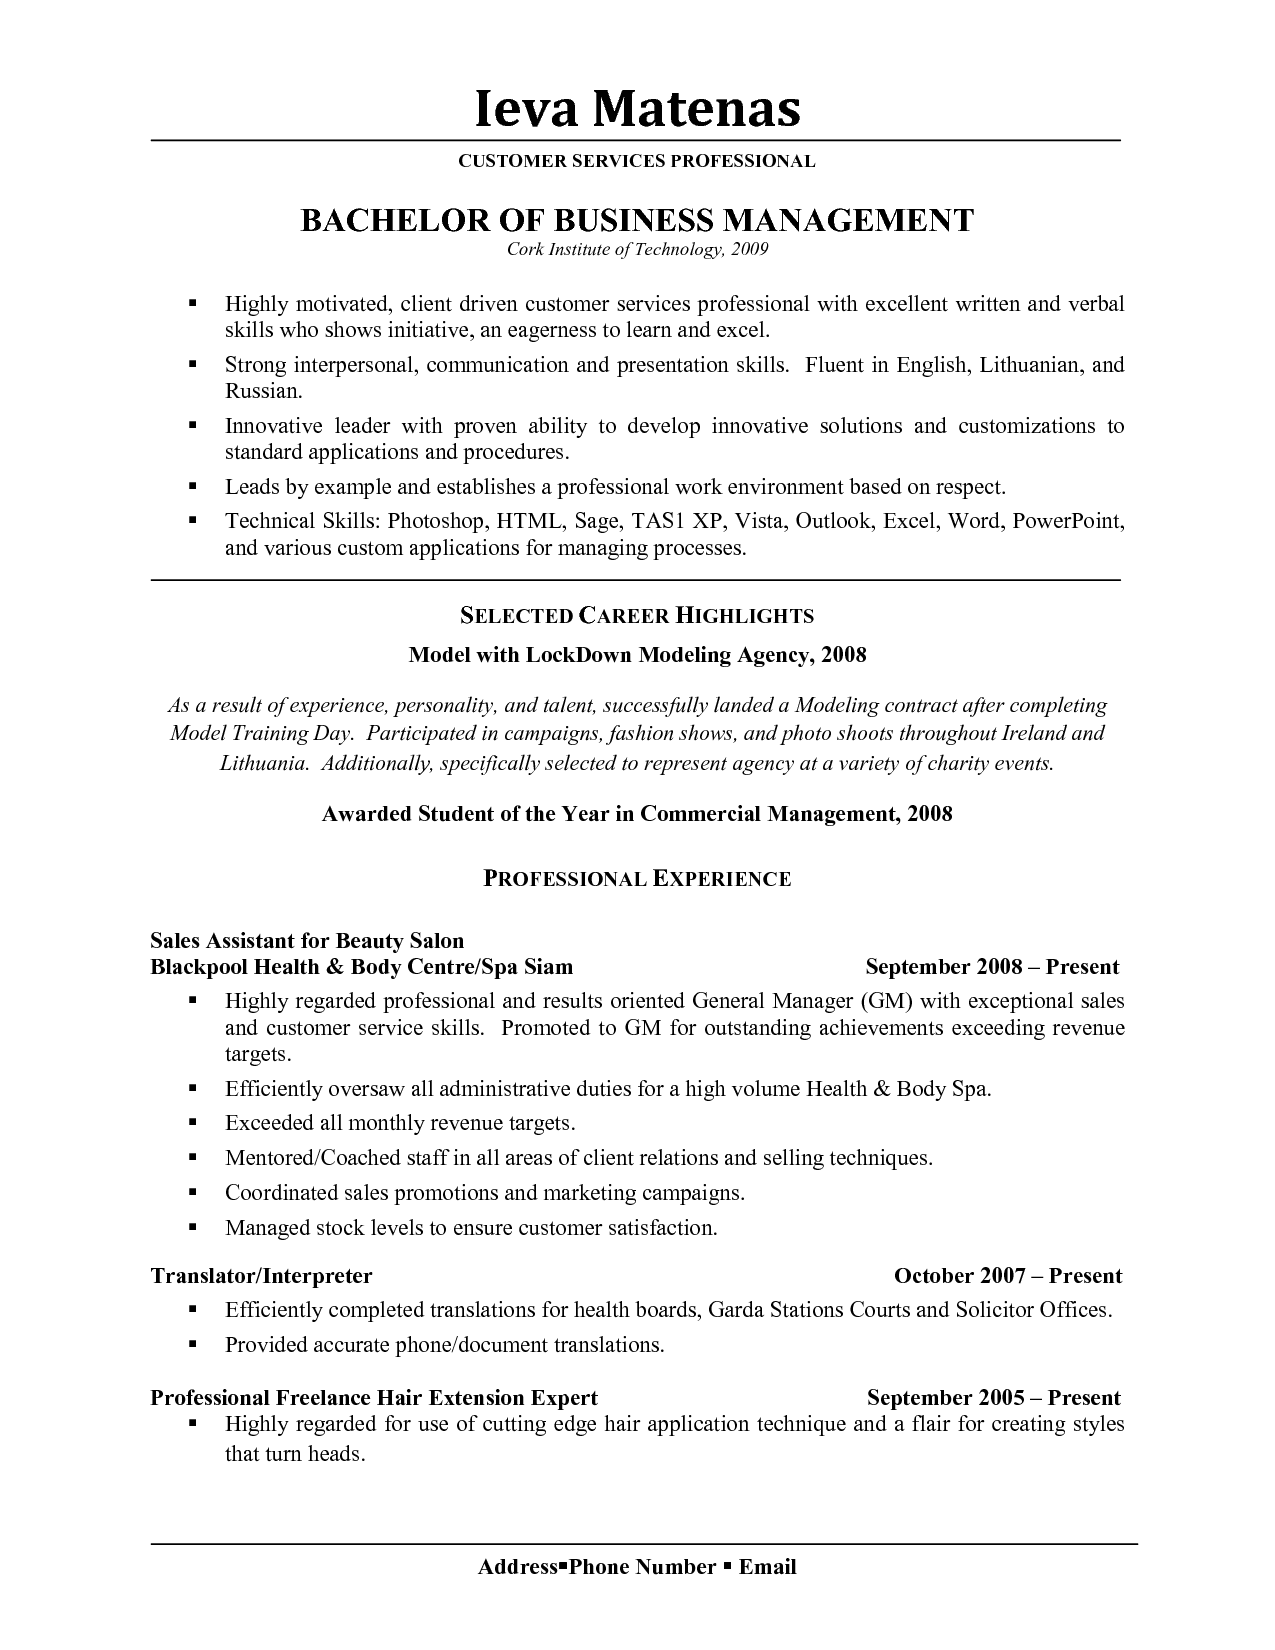 medical resumes examples doc 560782 receptionist resume format receptionist resume medical resume format medical resume format medical dental receptionist